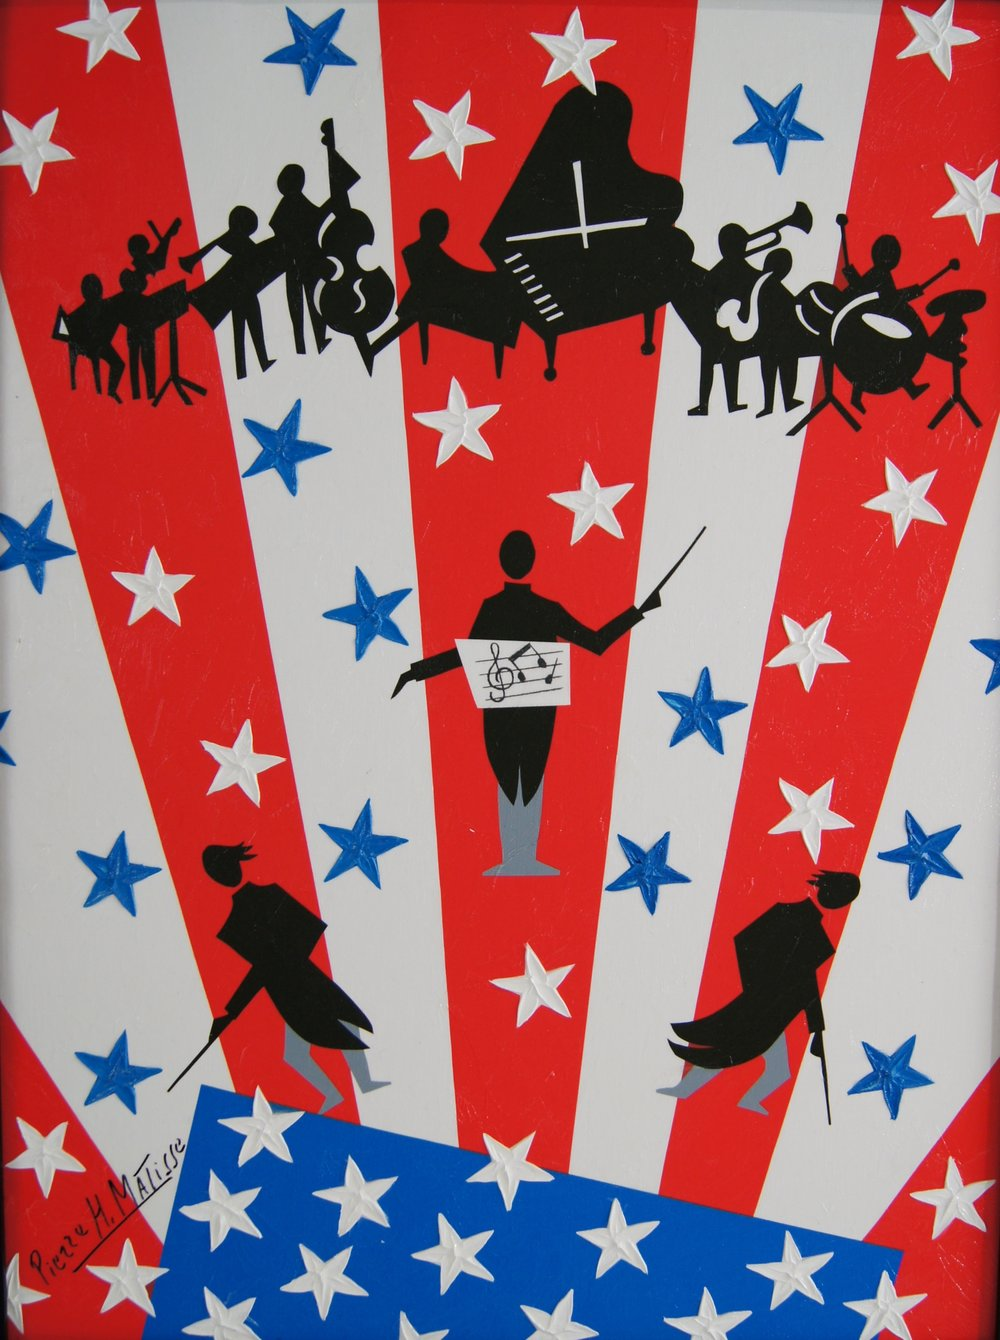 Stars and Stripes Forever - 18 x 24 - $6,950.00    FAB price $695.00